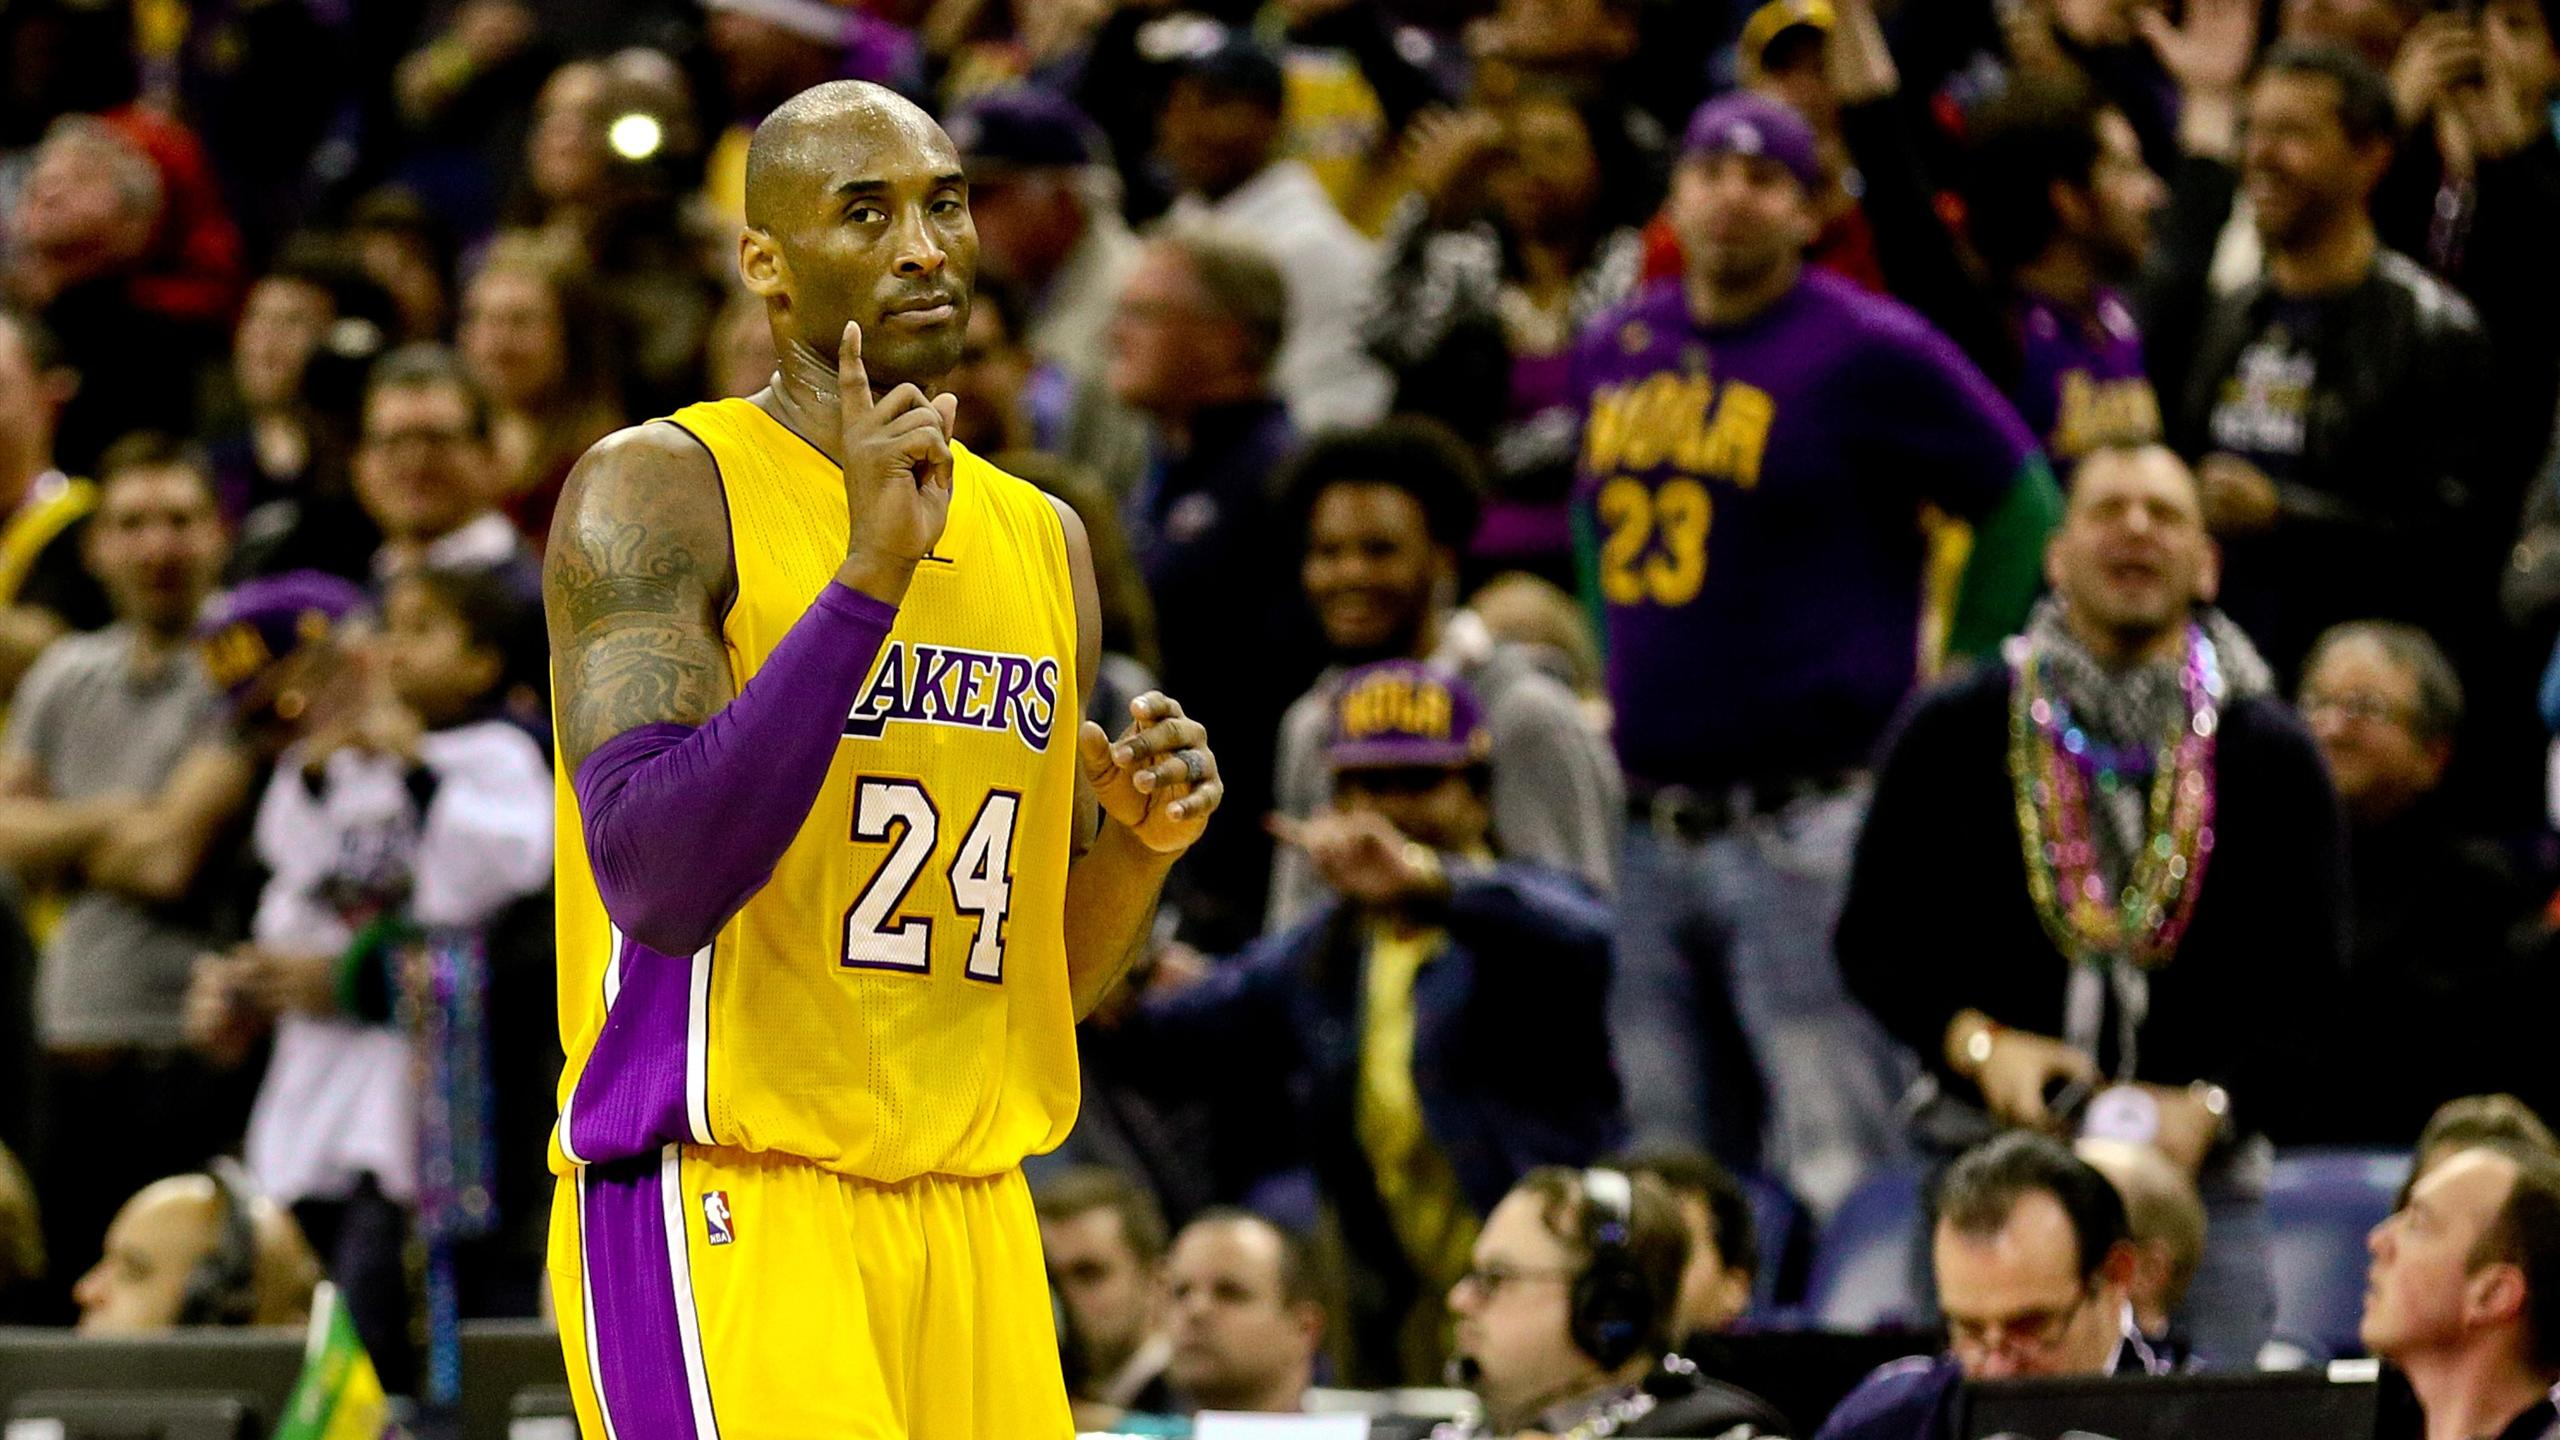 Los Angeles Lakers forward Kobe Bryant (24) gestures after scoring against the New Orleans Pelicans during the fourth quarter of a game at the Smoothie King Center